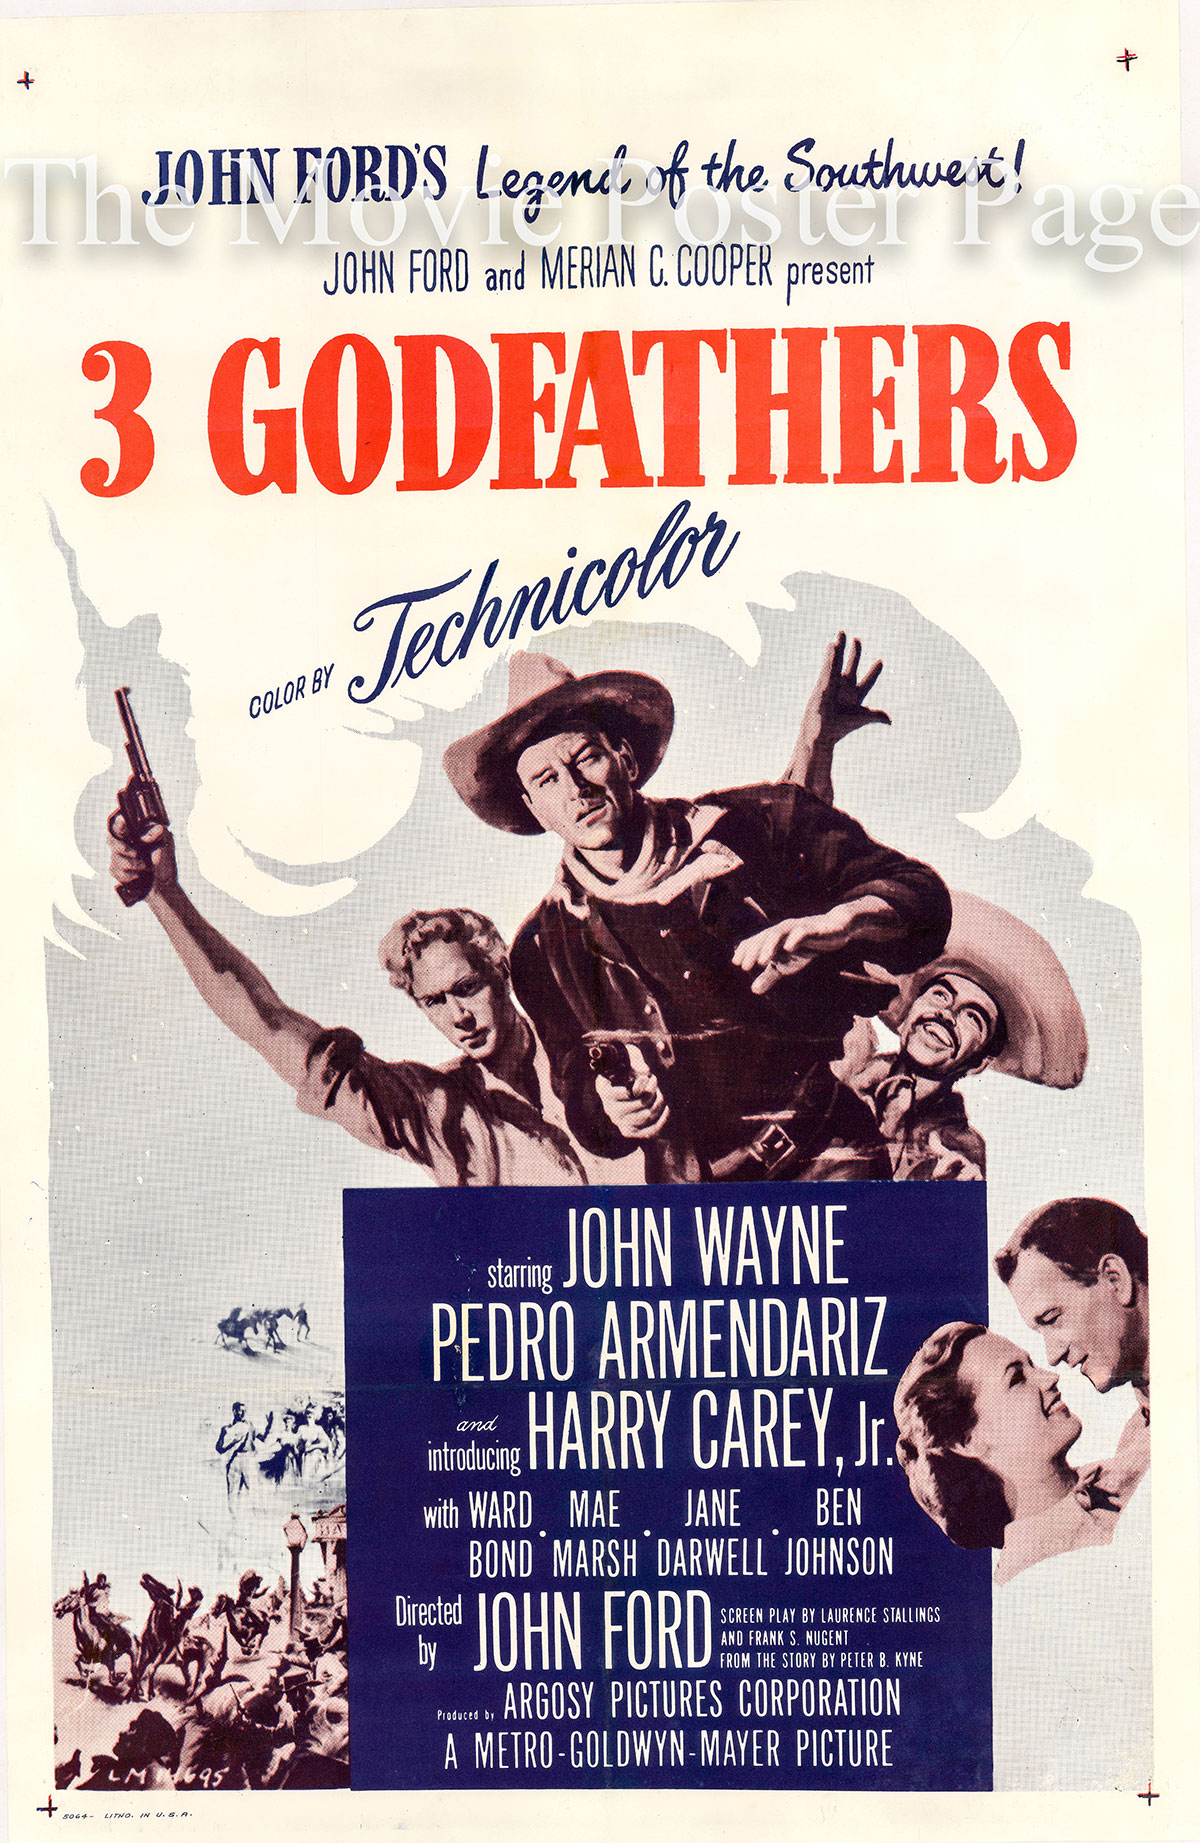 Pictured is a 1950 rerelease poster for the 1948 John Ford film 3 Godfathers starring John Wayne as Robert Marmaduke Hightower.